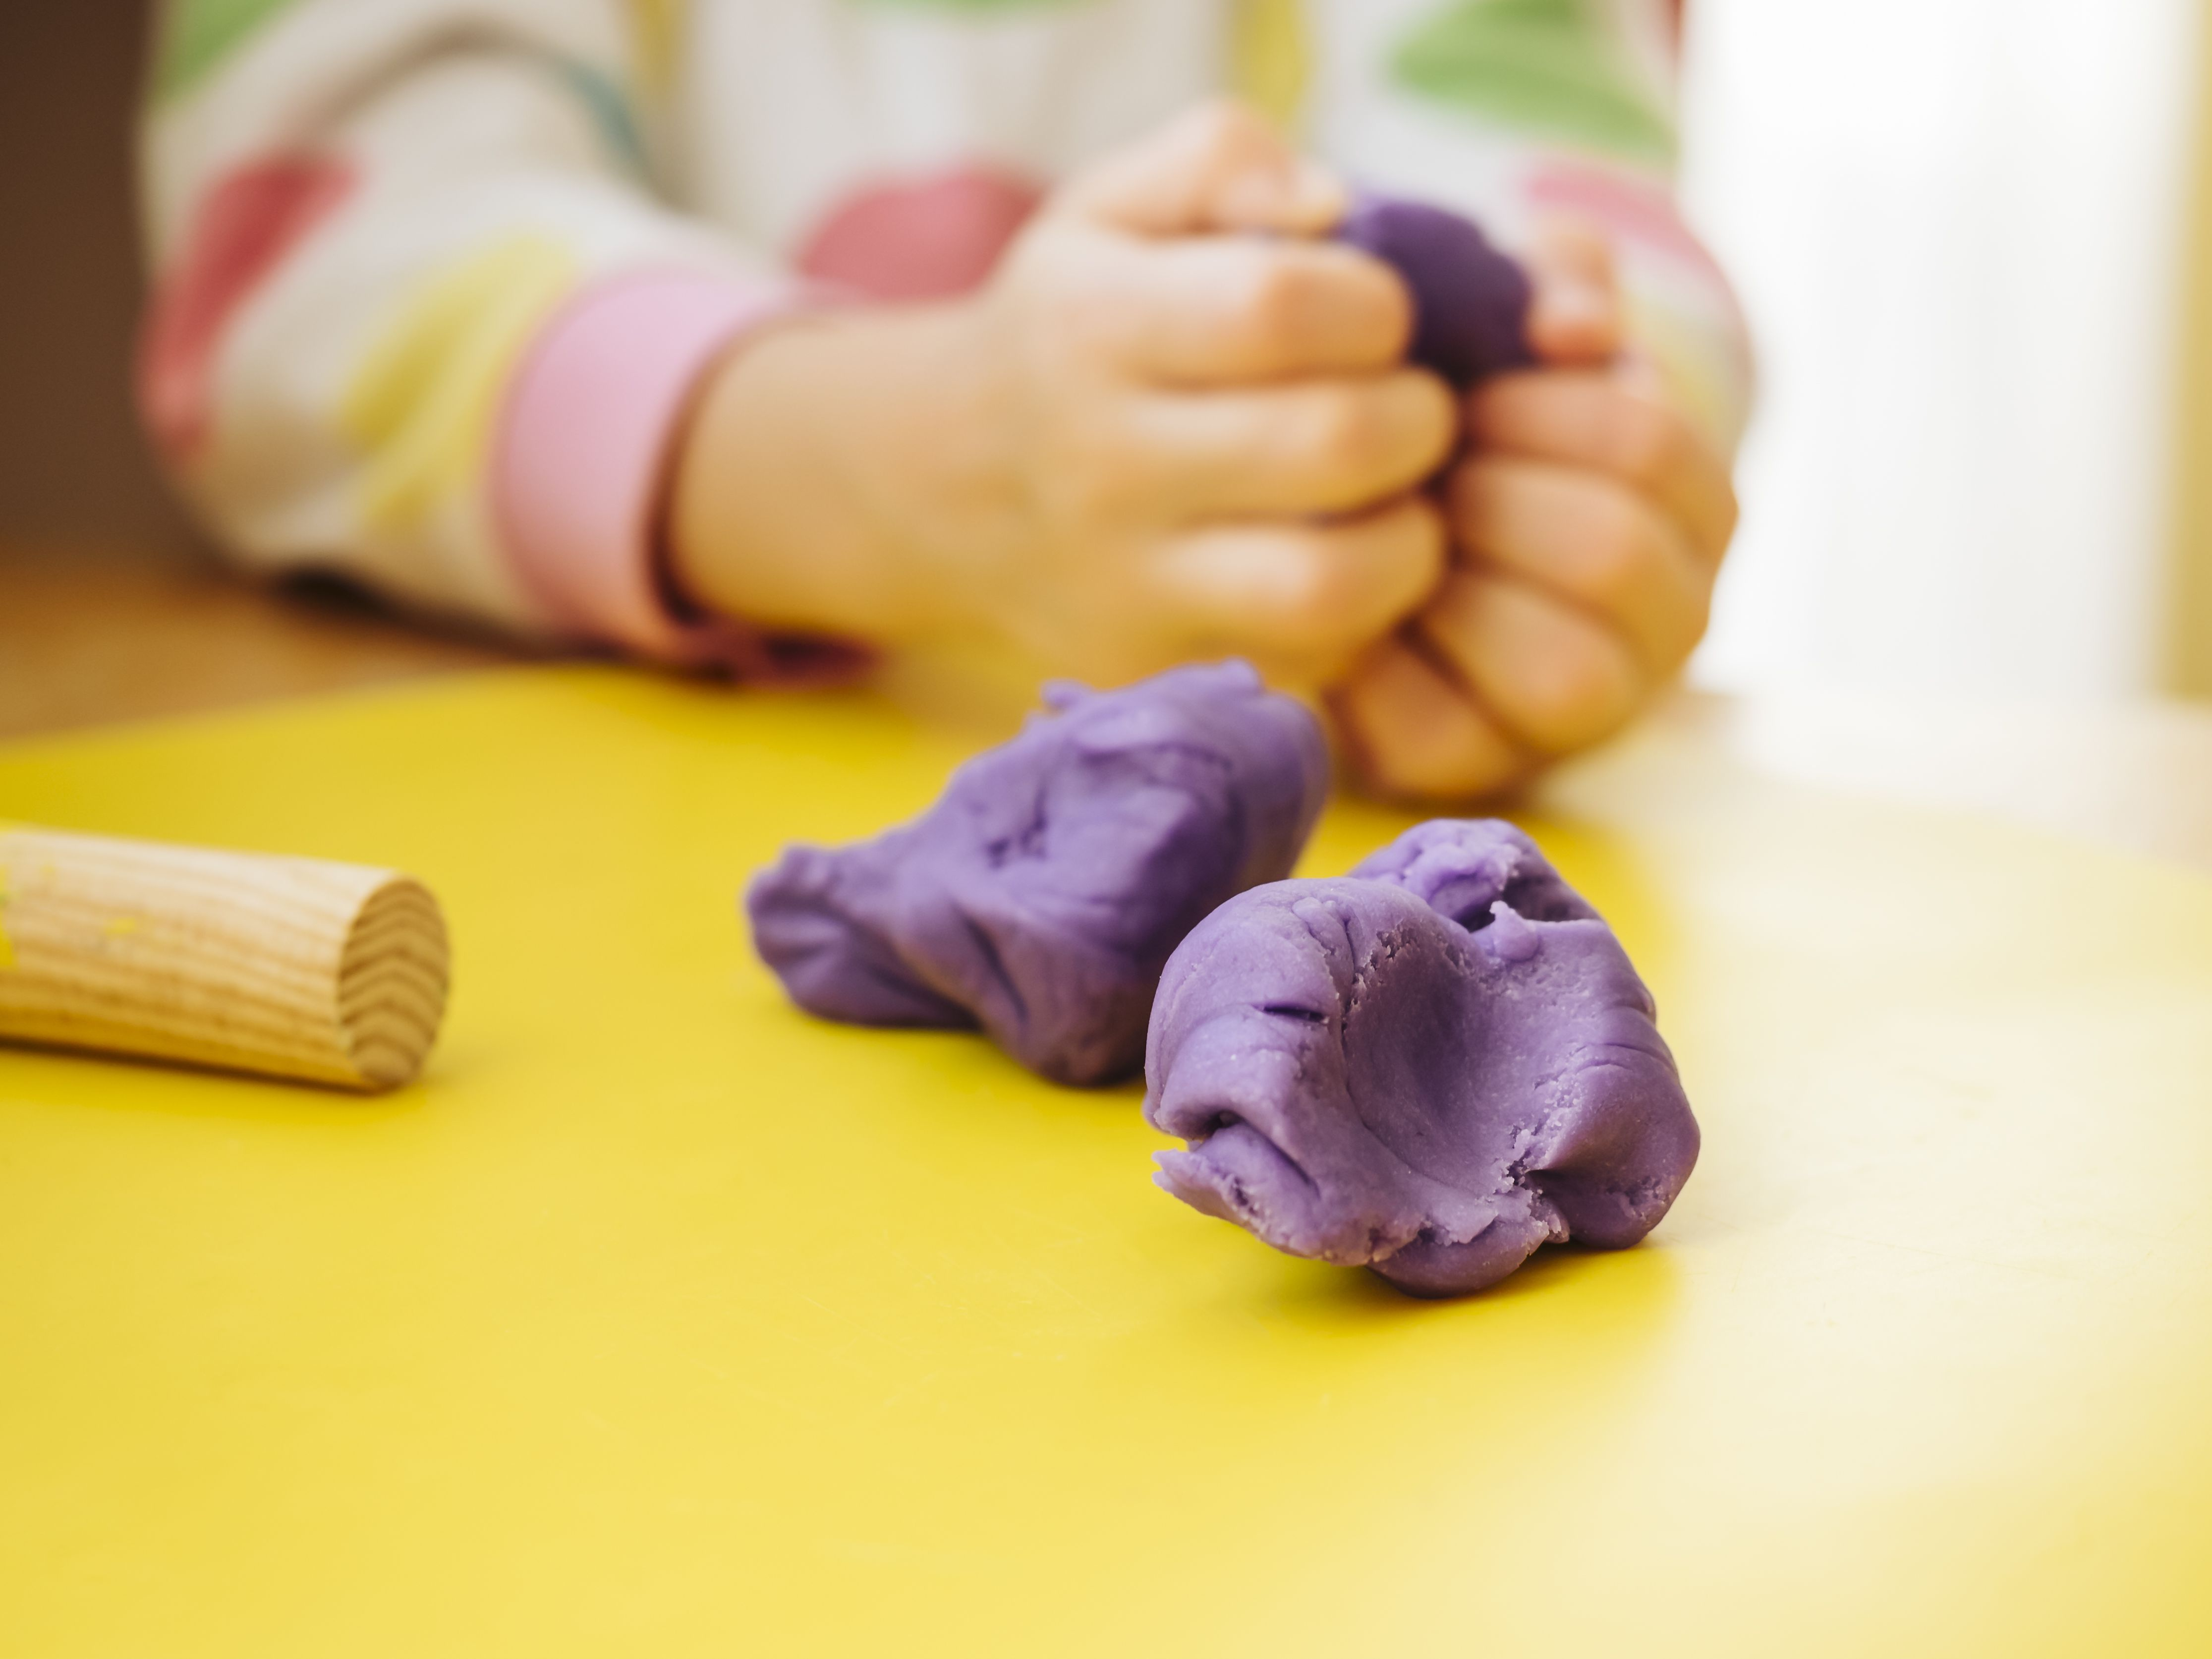 Is It Okay for Your Child to Eat Play Dough?